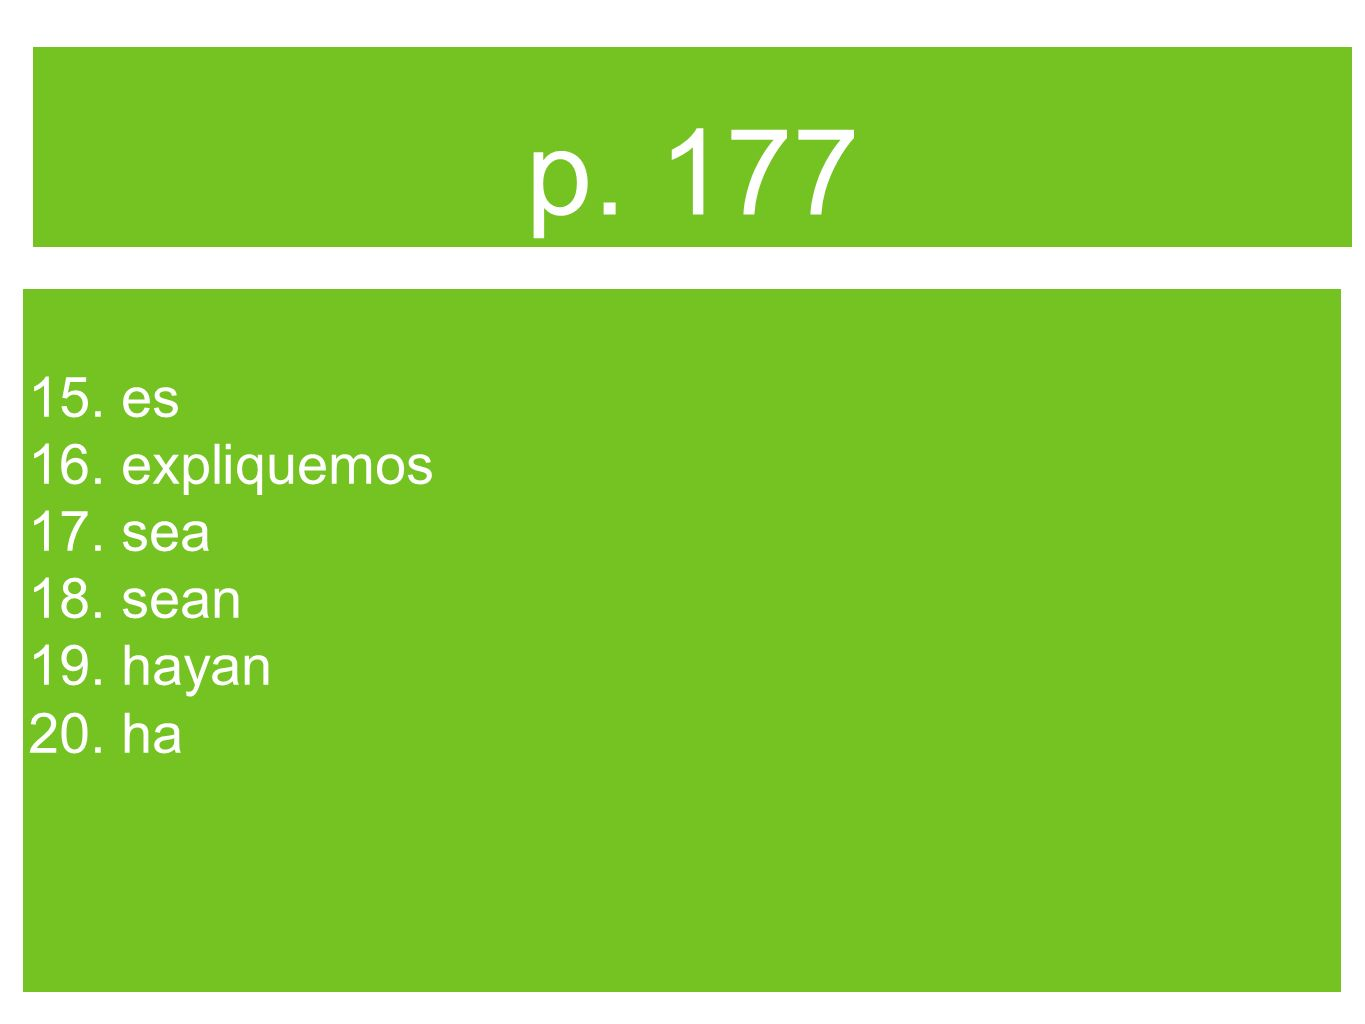 p. 177 15. es 16. expliquemos 17. sea 18. sean 19. hayan 20. ha